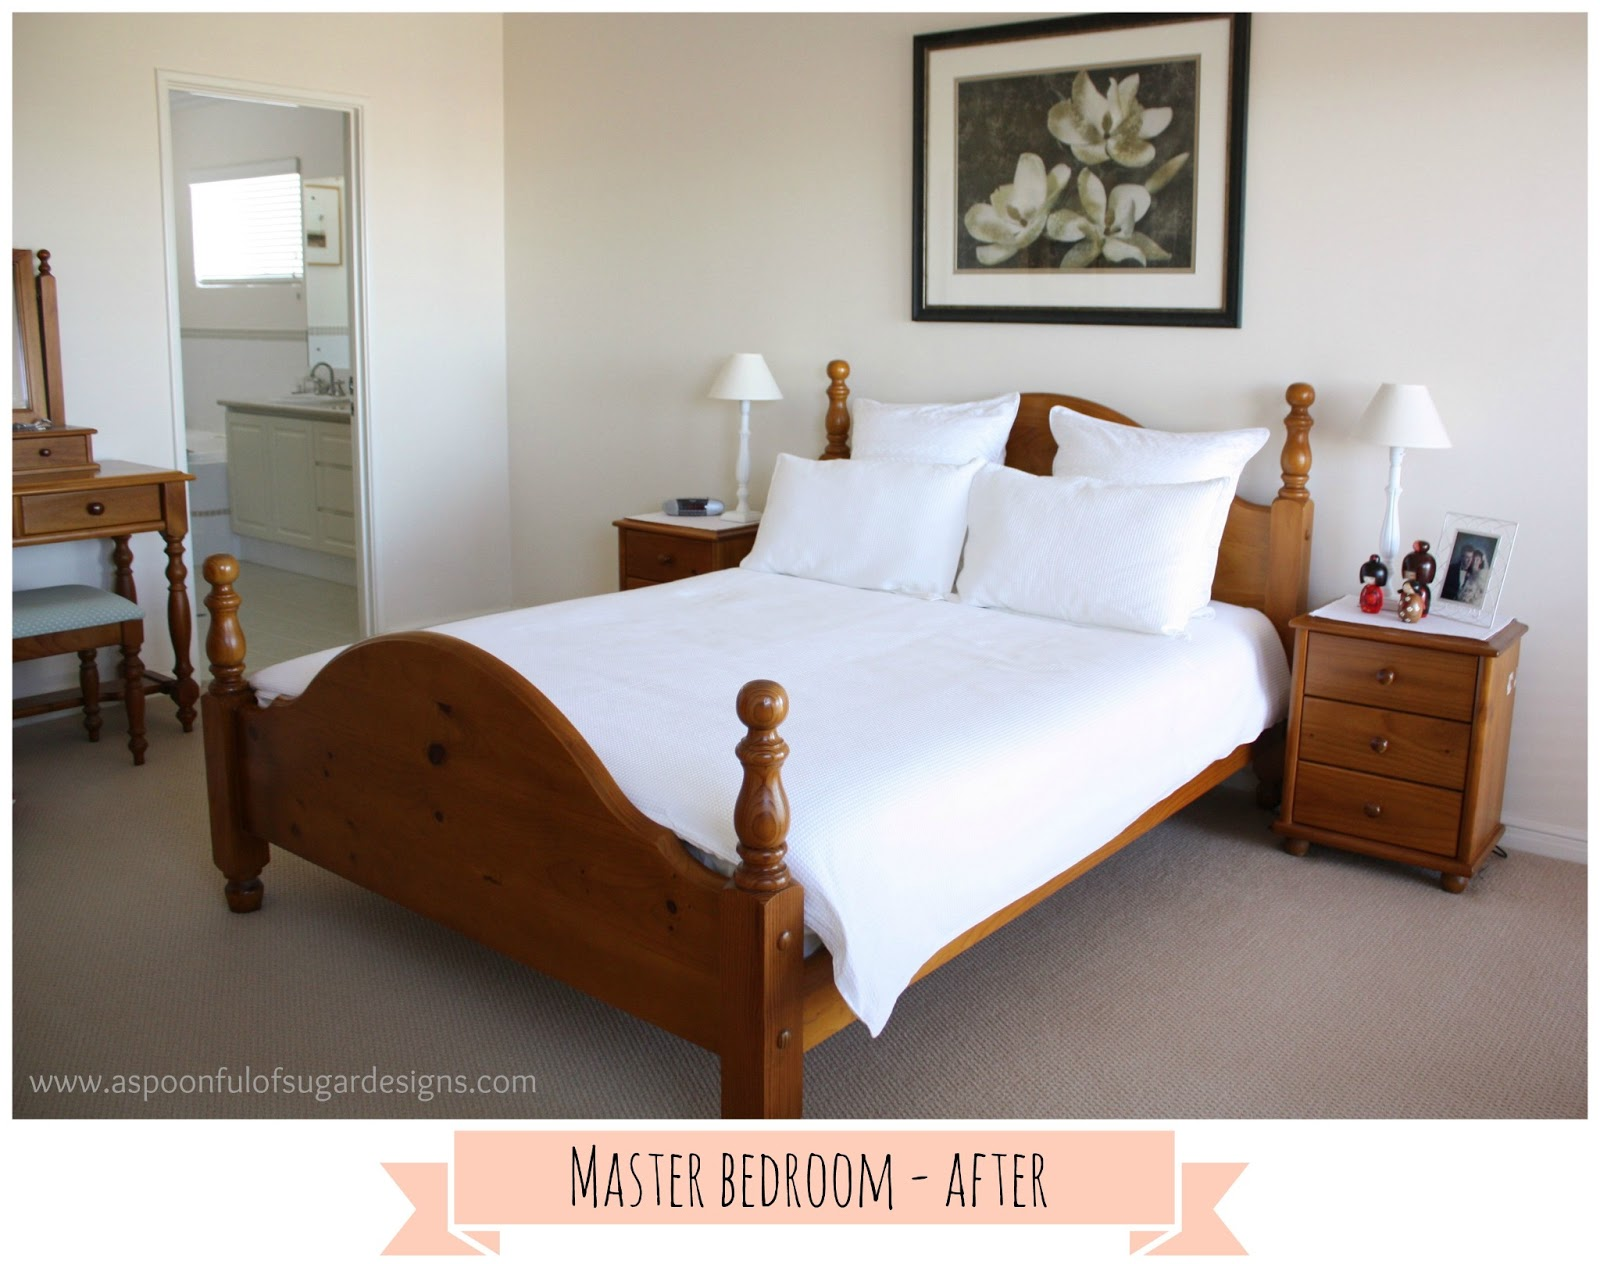 Target Bedroom Bedroom Makeover A Spoonful Of Sugar